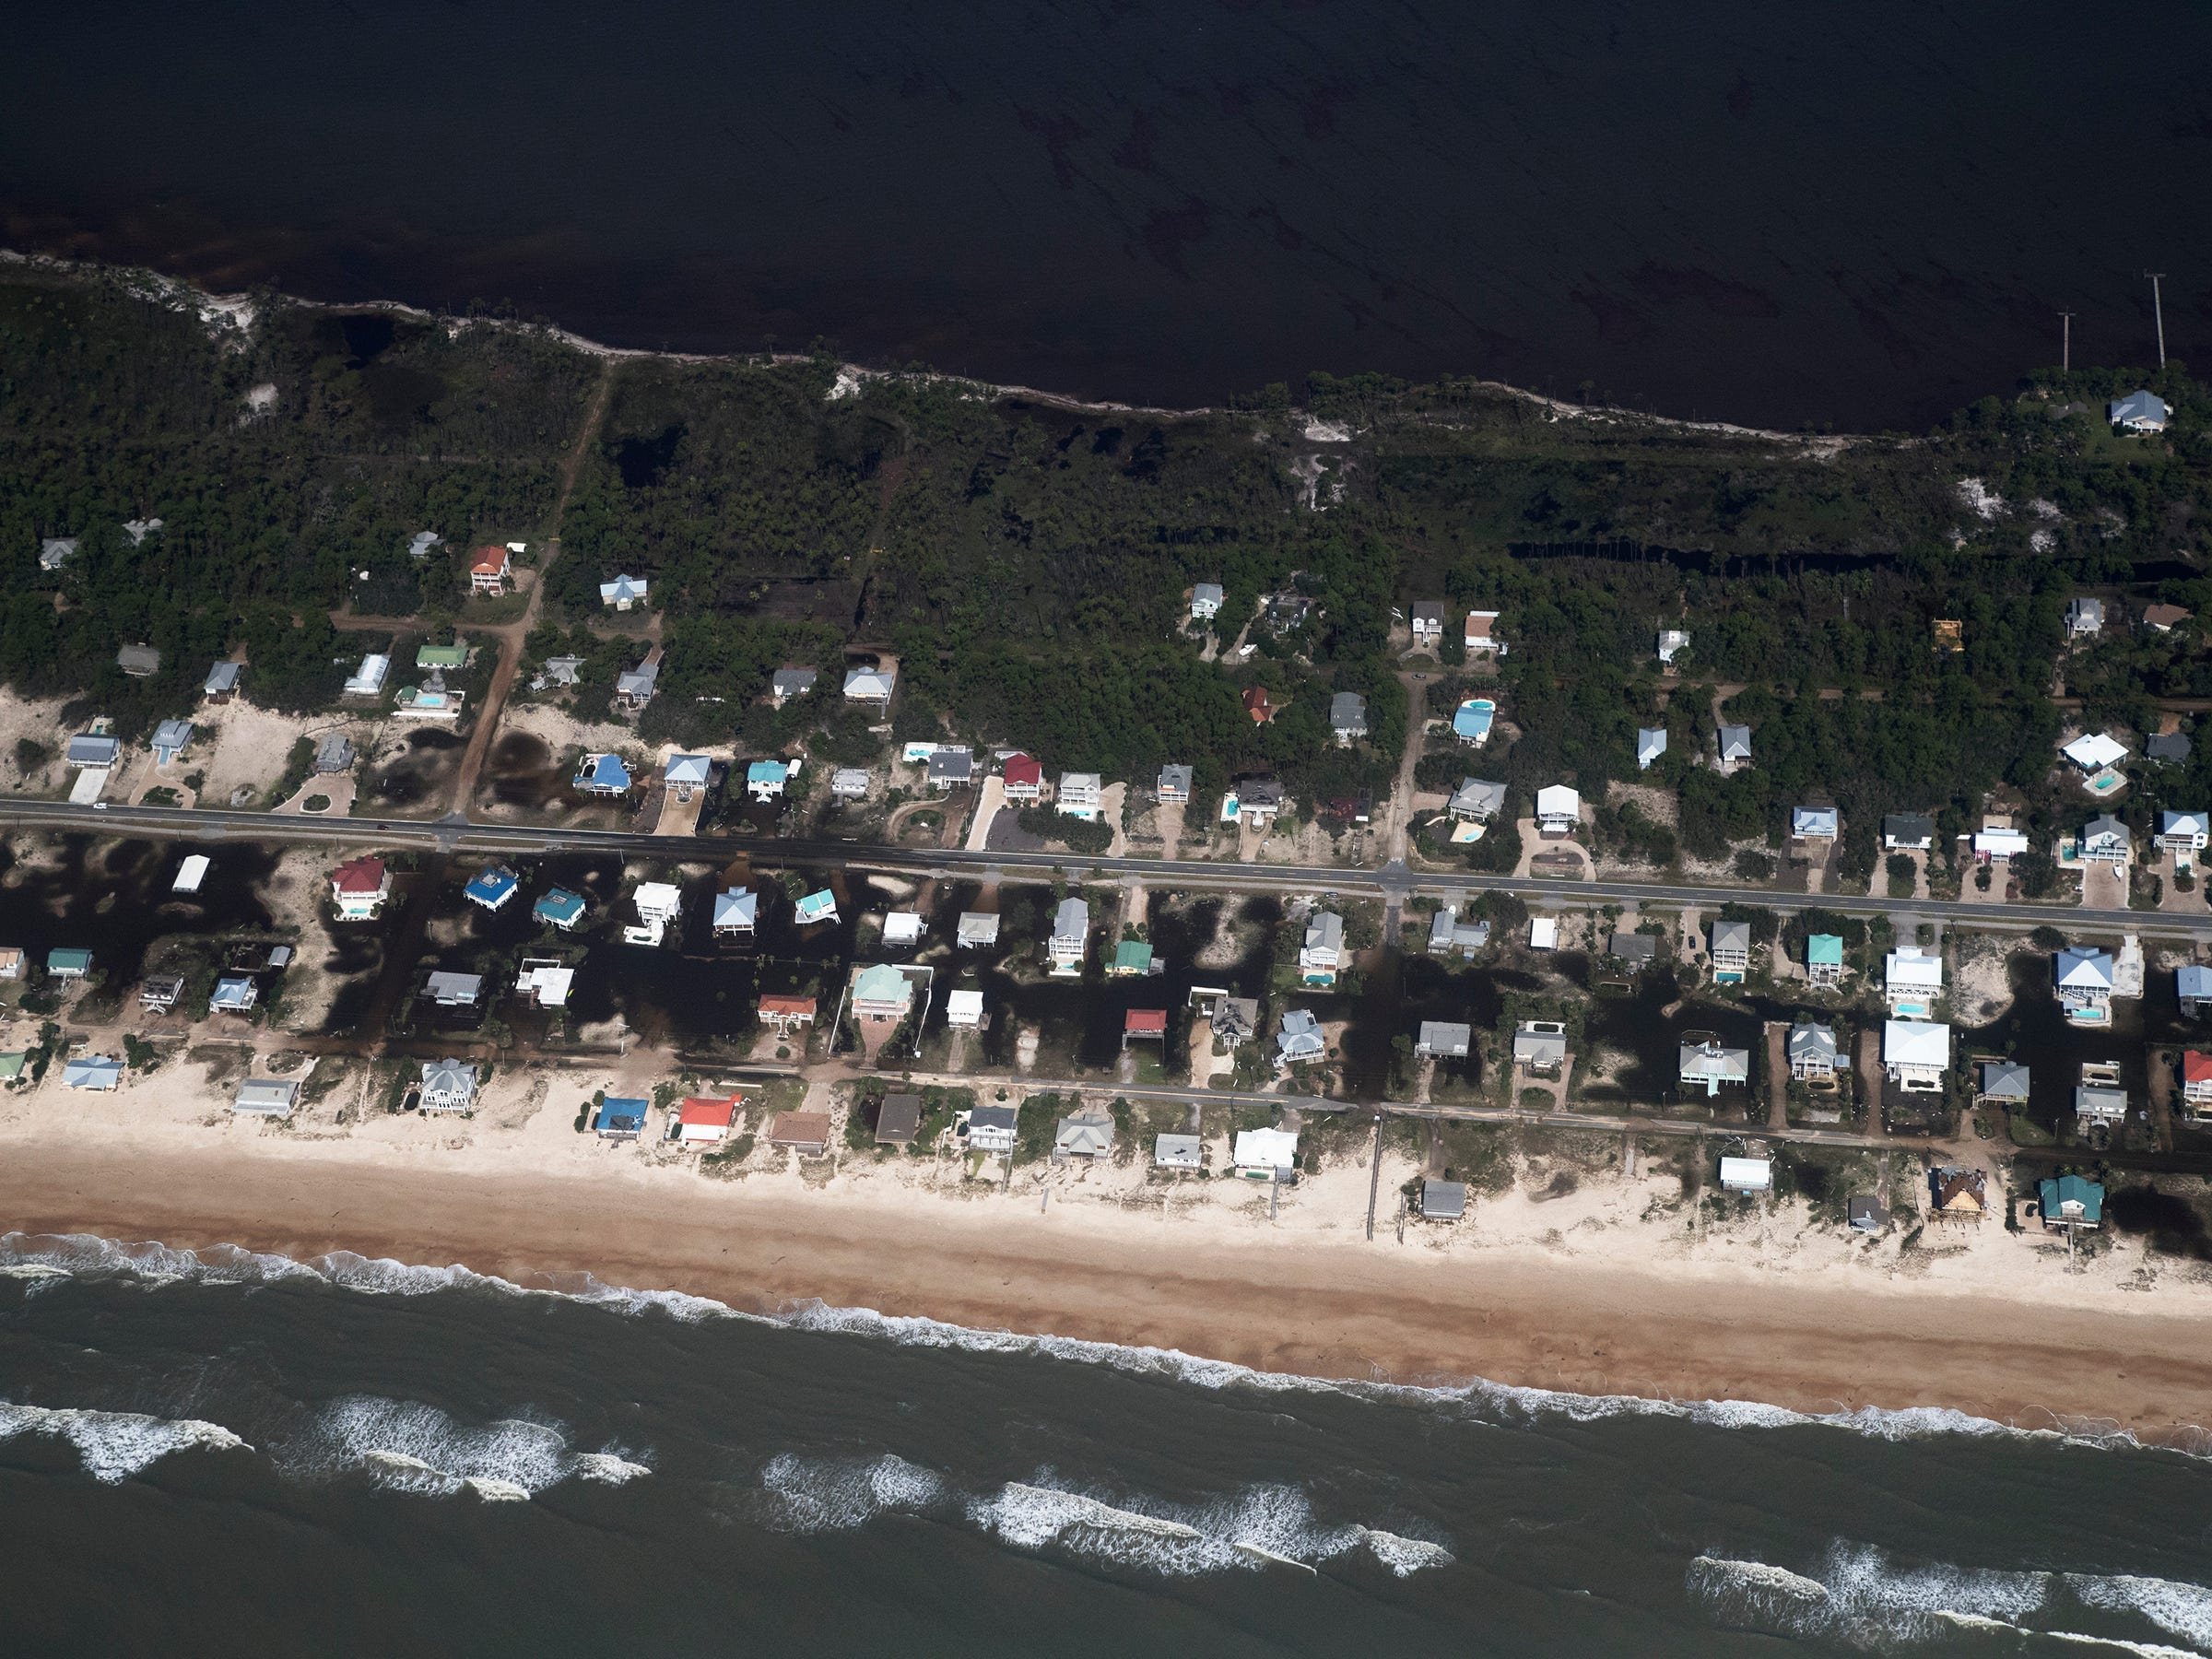 Hurricane Michael damaged several homes on St. George Island in Franklin County, Florida.